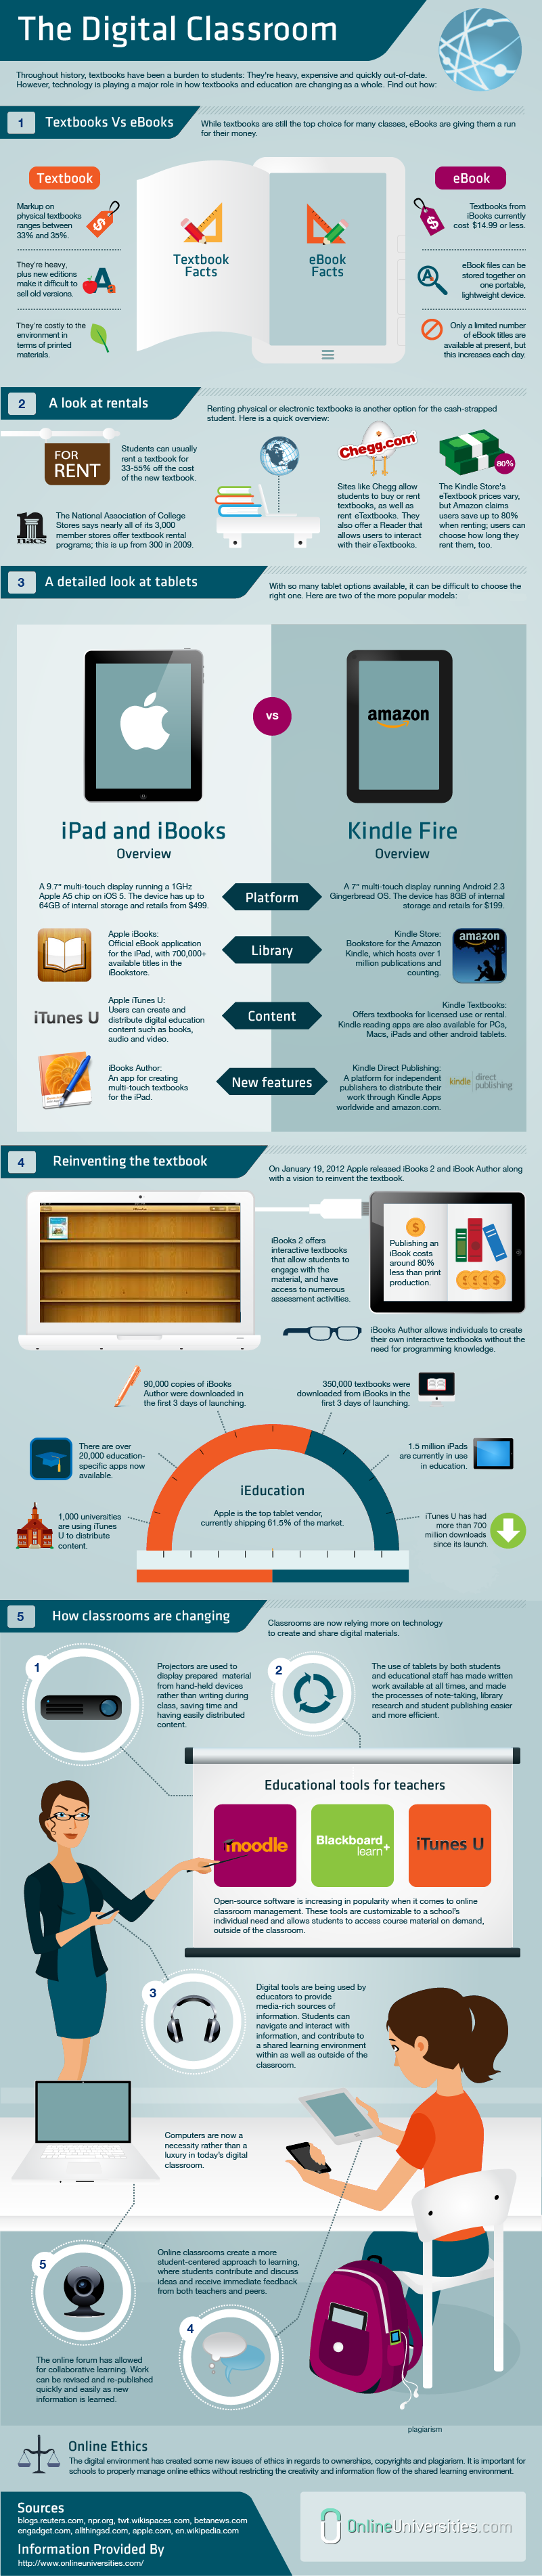 The-Digital-Classroom-infographic